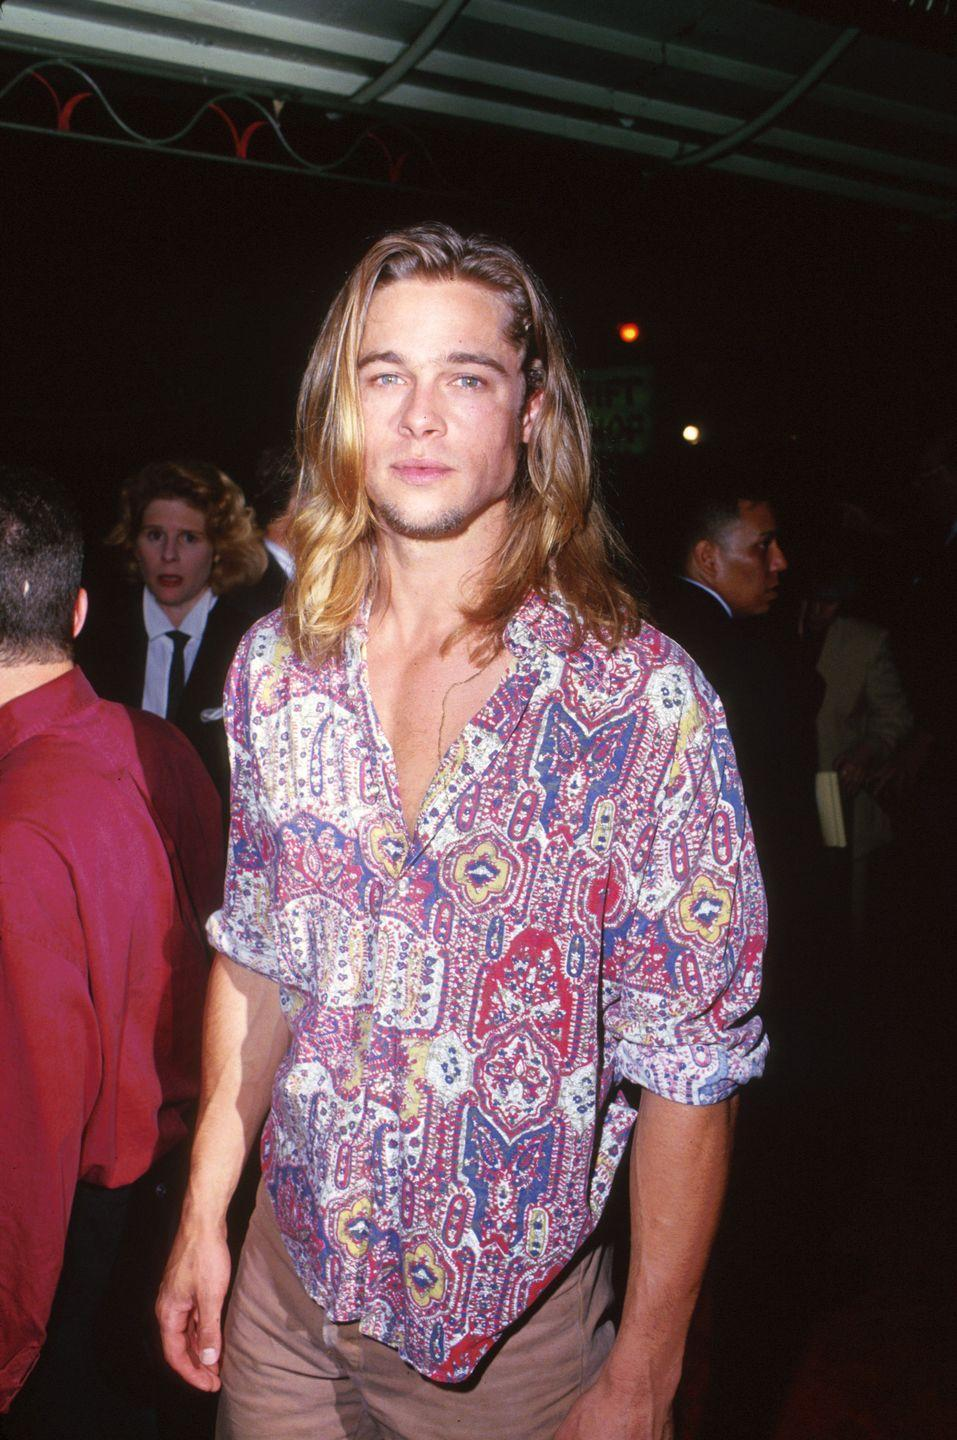 <p>Brad Pitt grew his blonde hair long for one of his earliest films, <em>Legends of the Fall. </em>The actor ended up keeping the look for a few more years before he chopped it off. </p>